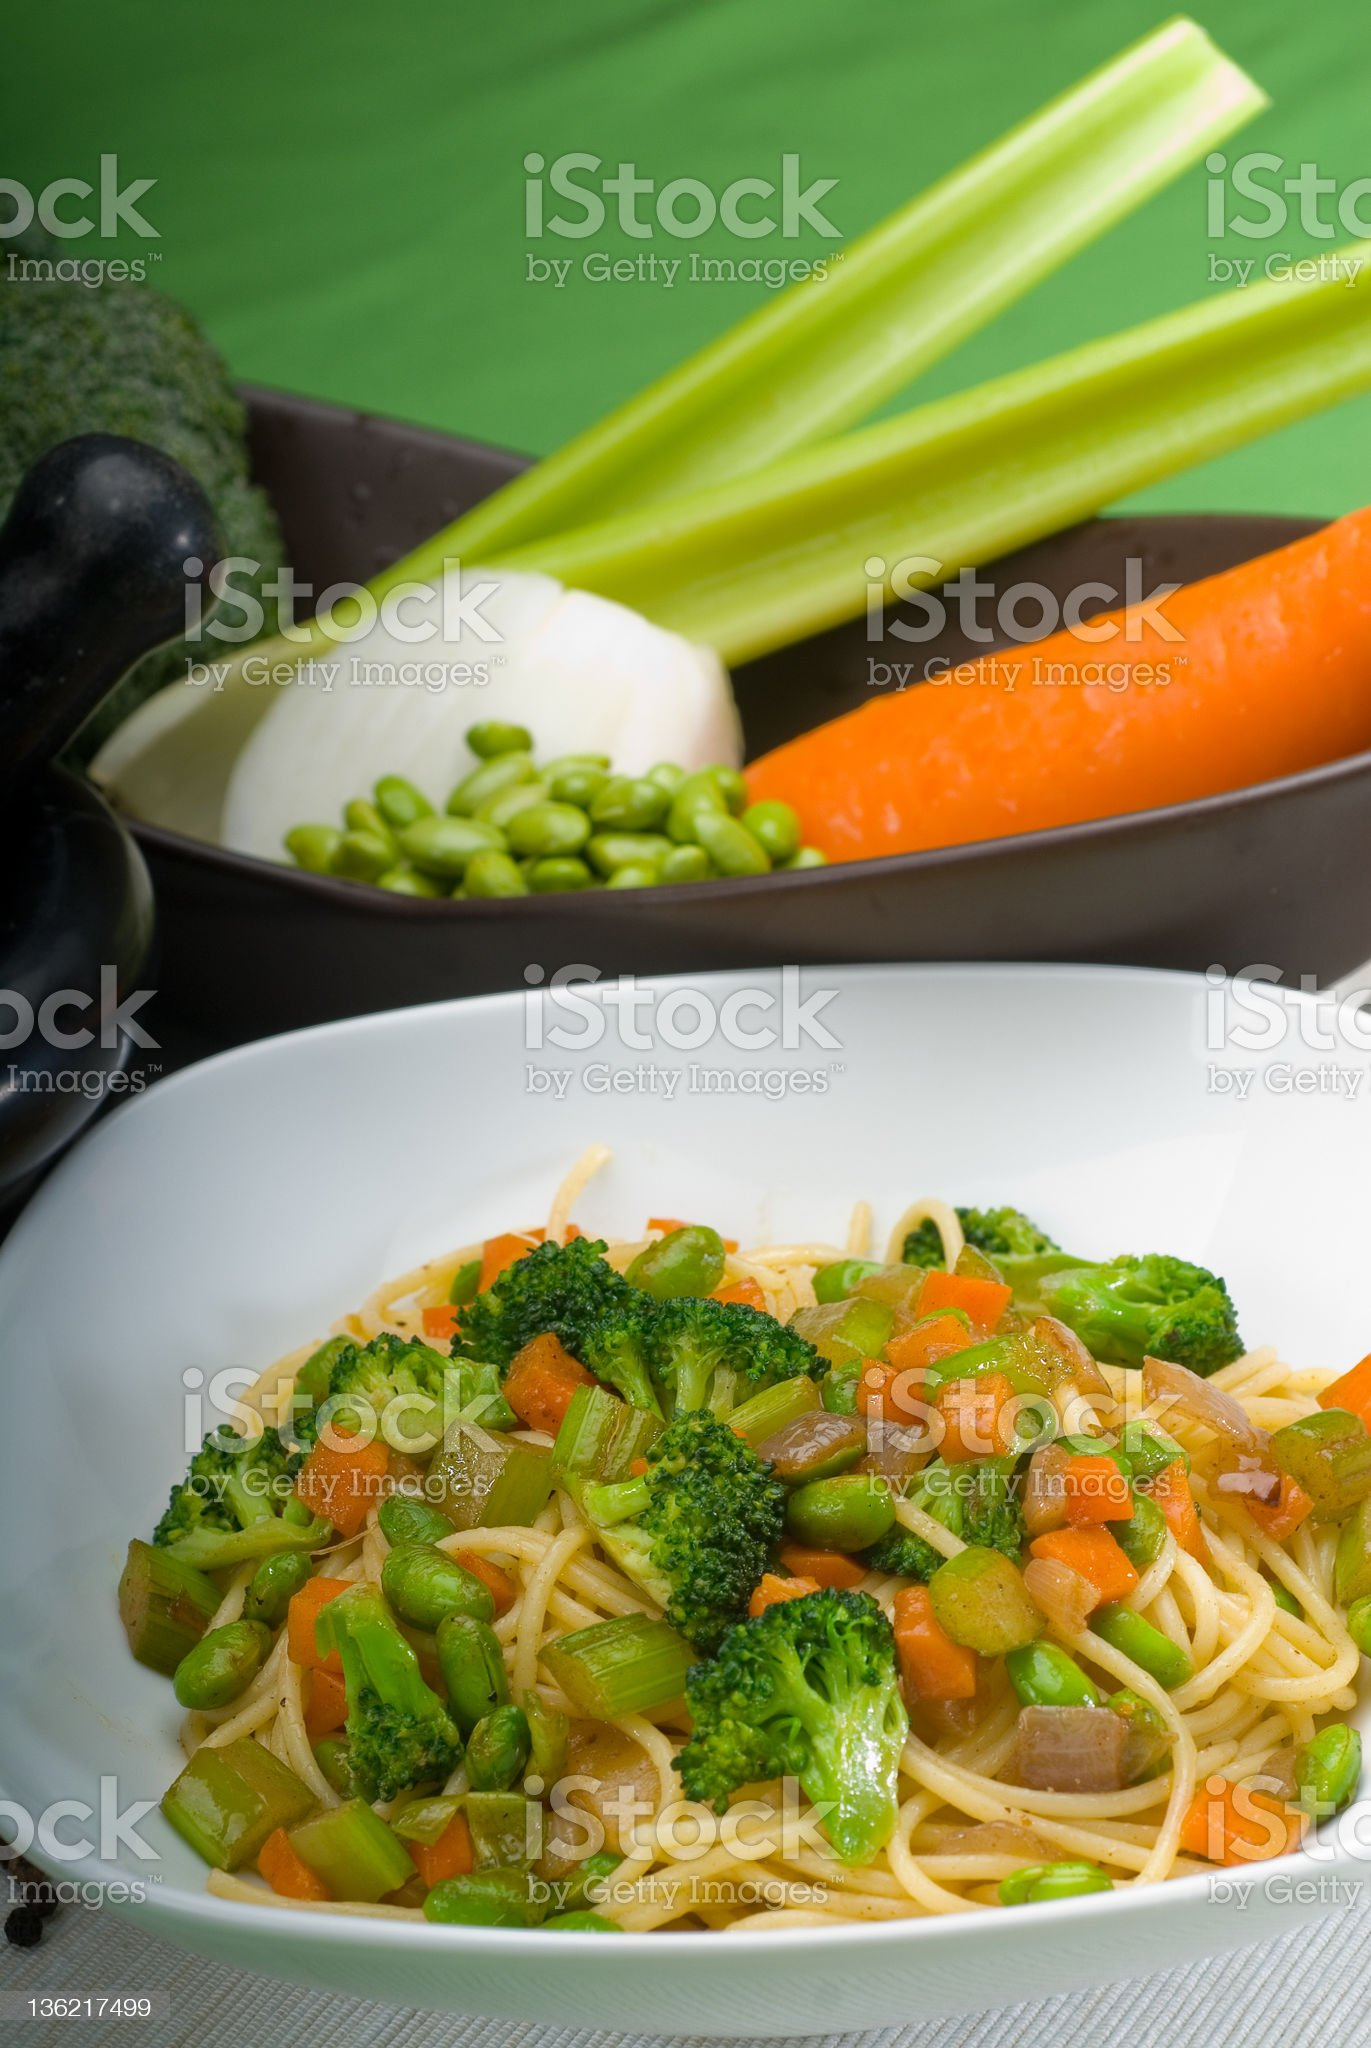 vegetable pasta royalty-free stock photo